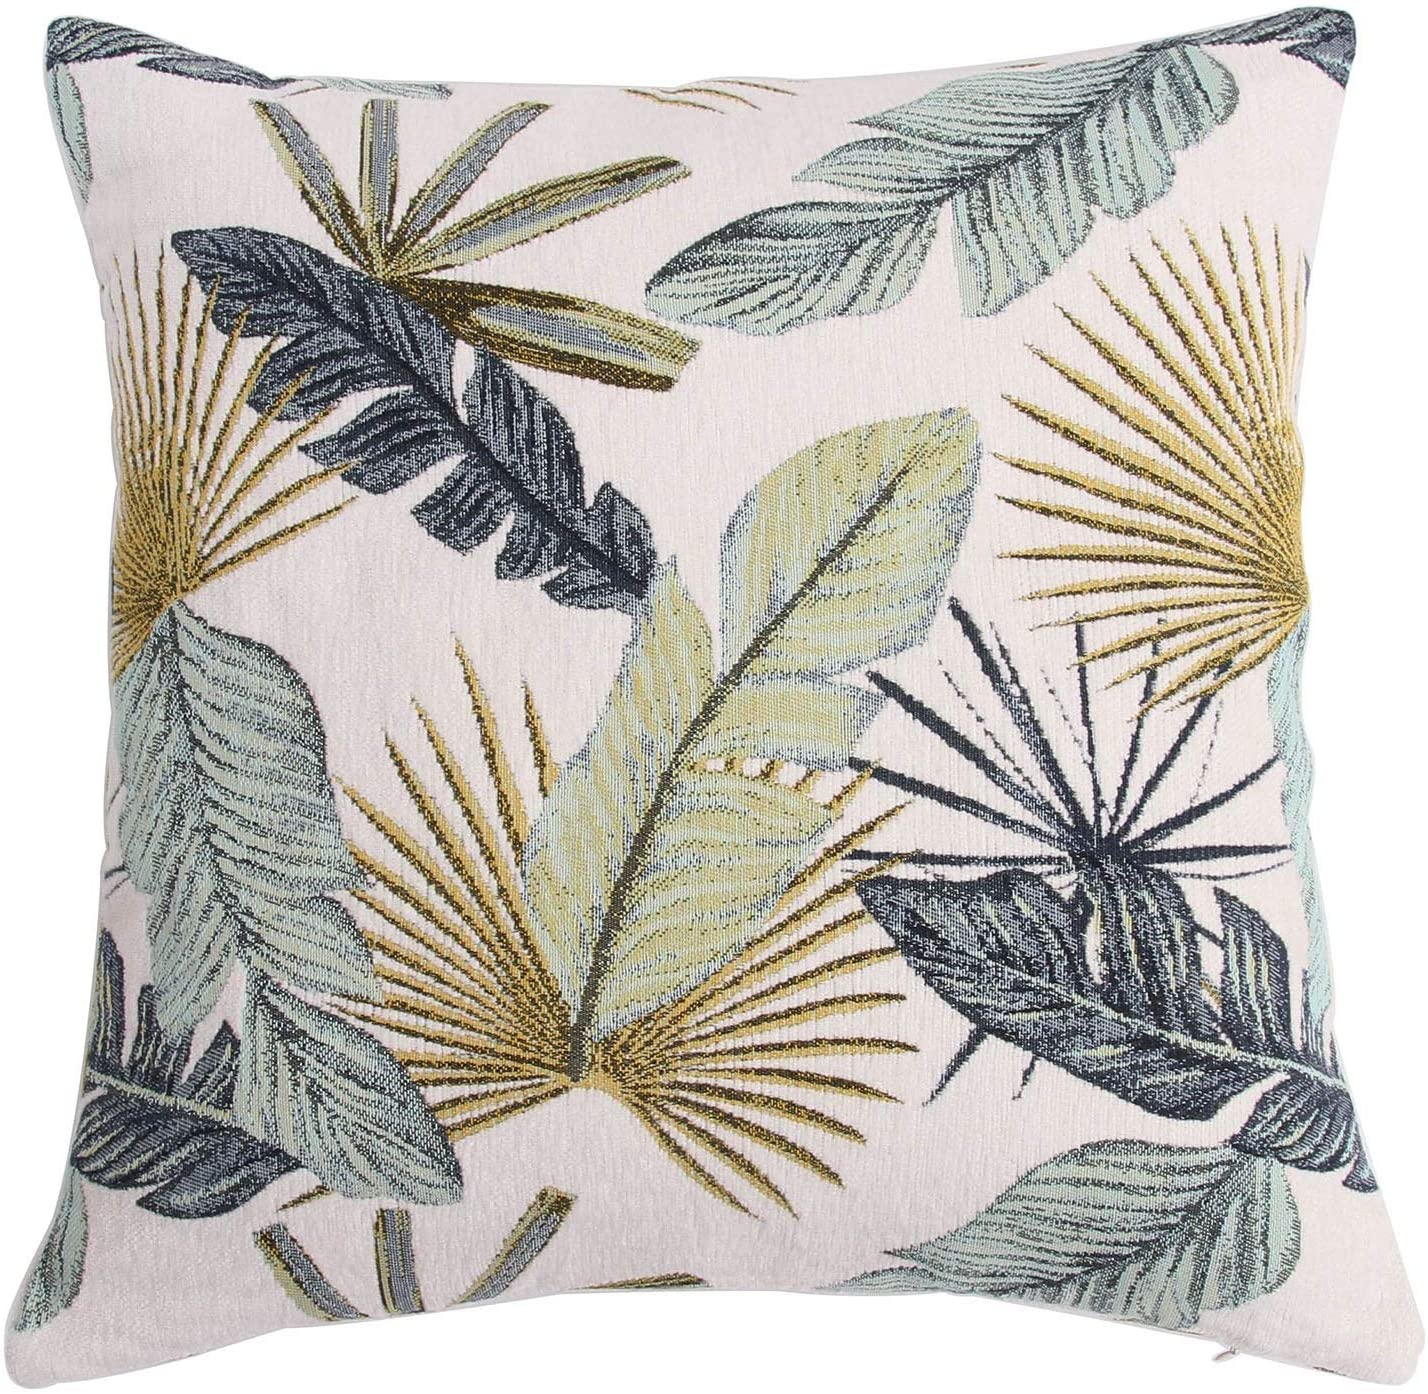 Yeiotsy Pillow Case, Decorative Tropical Leaf Throw Pillow Cover Heavy Fabric Jacquard Chenille (Yellow, 18 x 18 Inches)